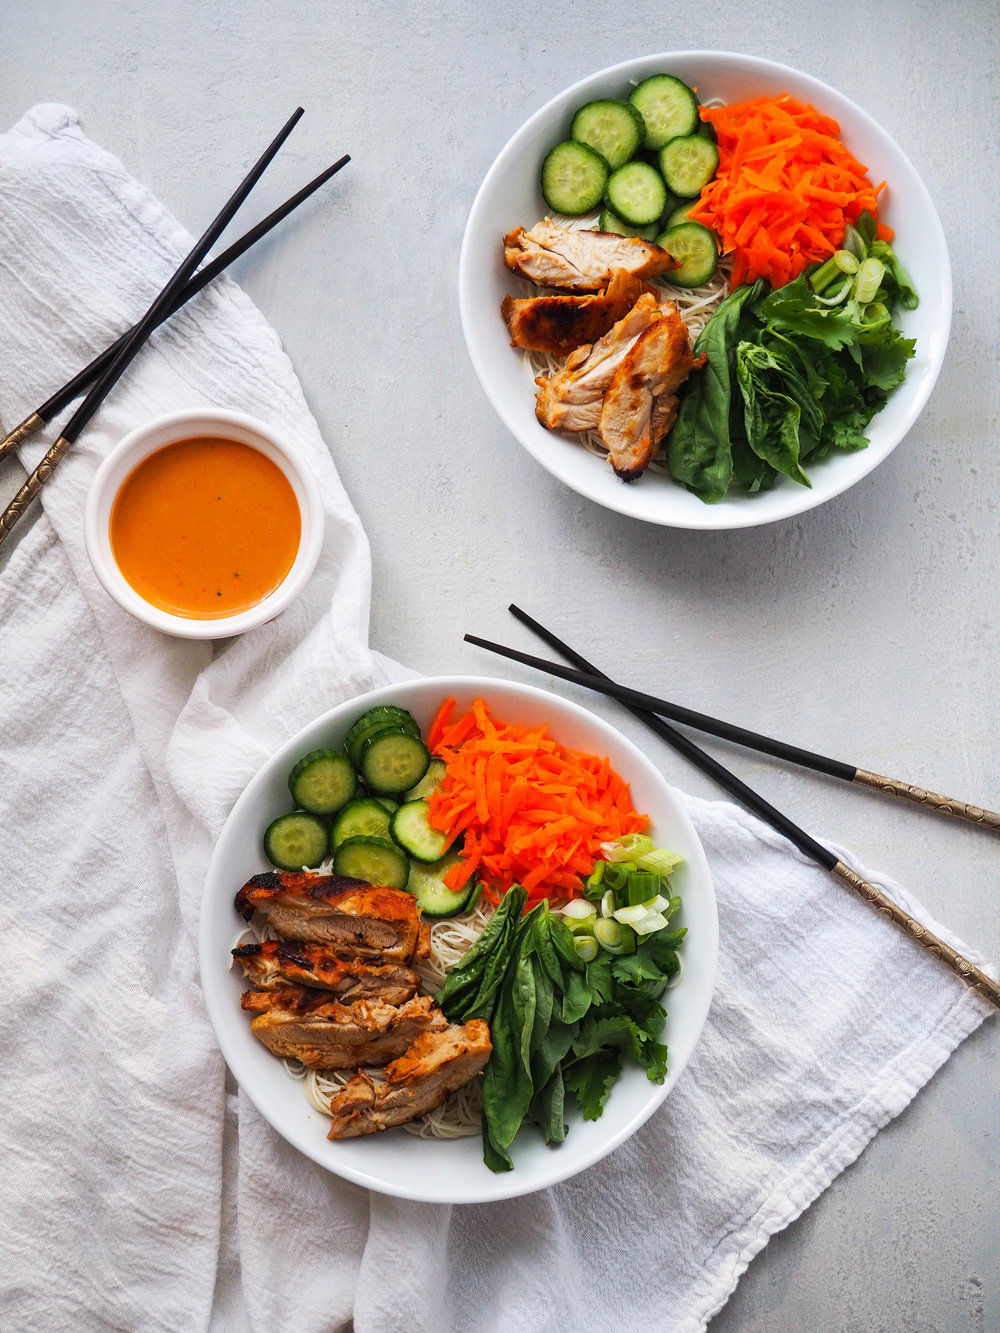 This noodle bowl with lemongrass chicken and peanut sauce can be prepped in less than 30 minutes! Perfect make ahead lunch for the weekend! #noodle #noodlebowl #glutenfree #chicken #salad #lunch #makeahead